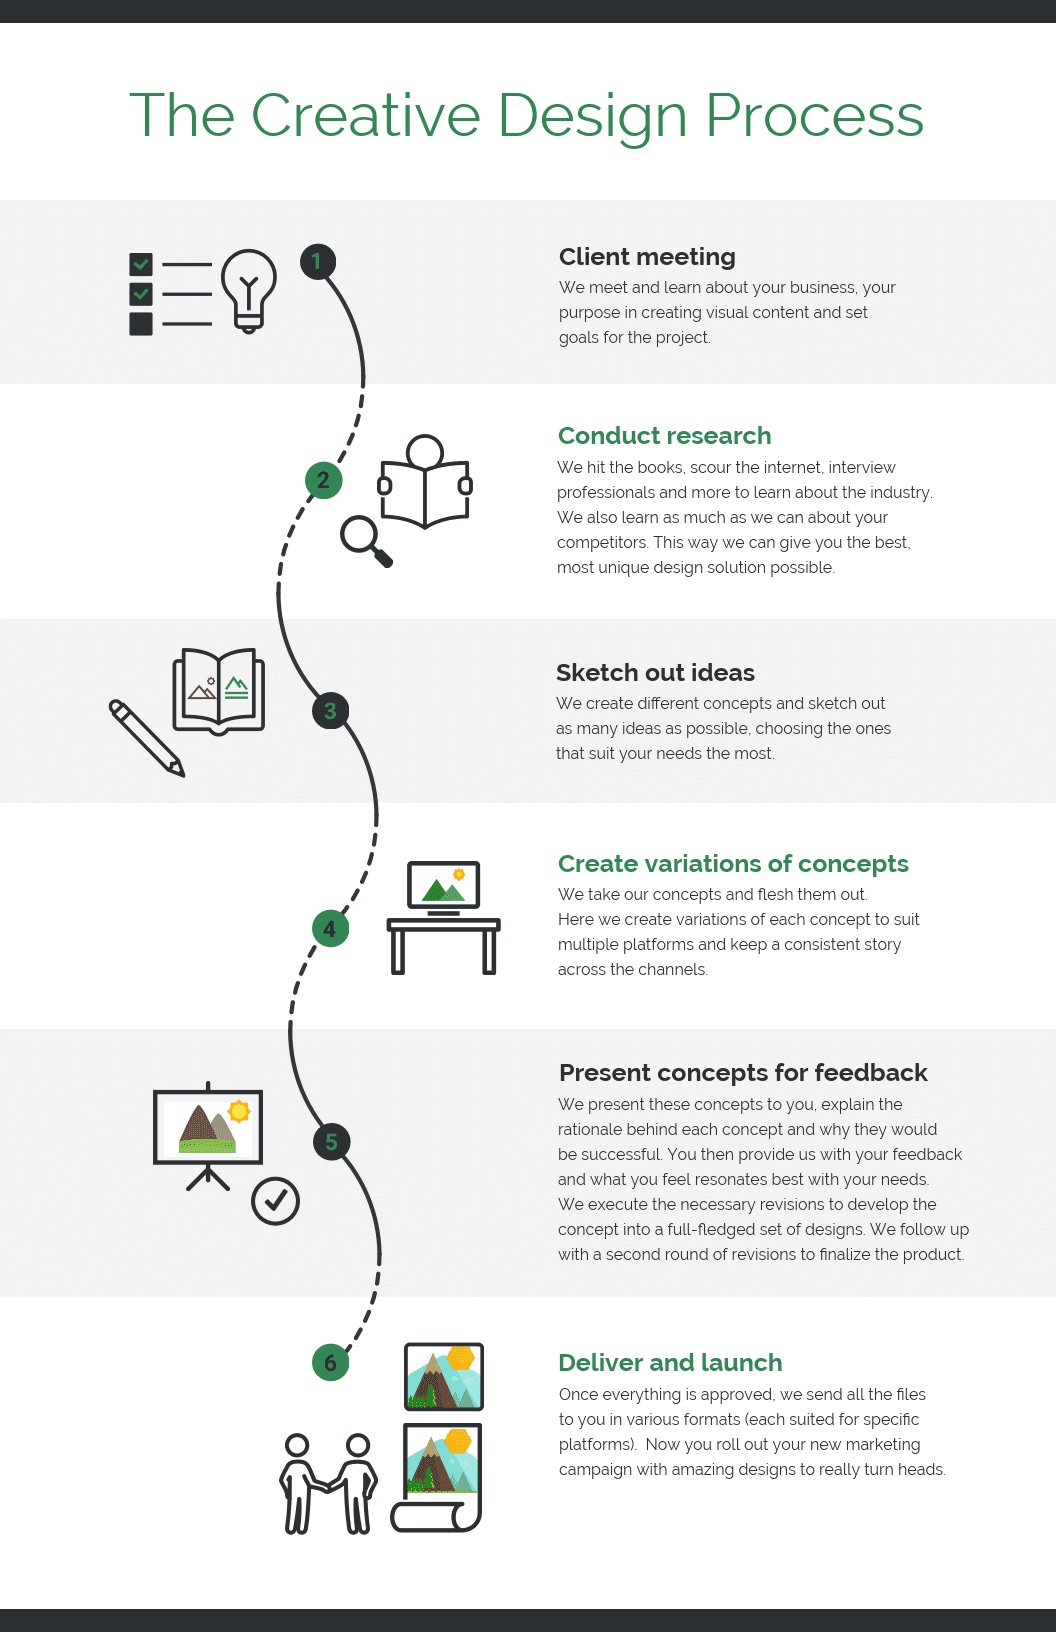 Creative Design Process Infographic